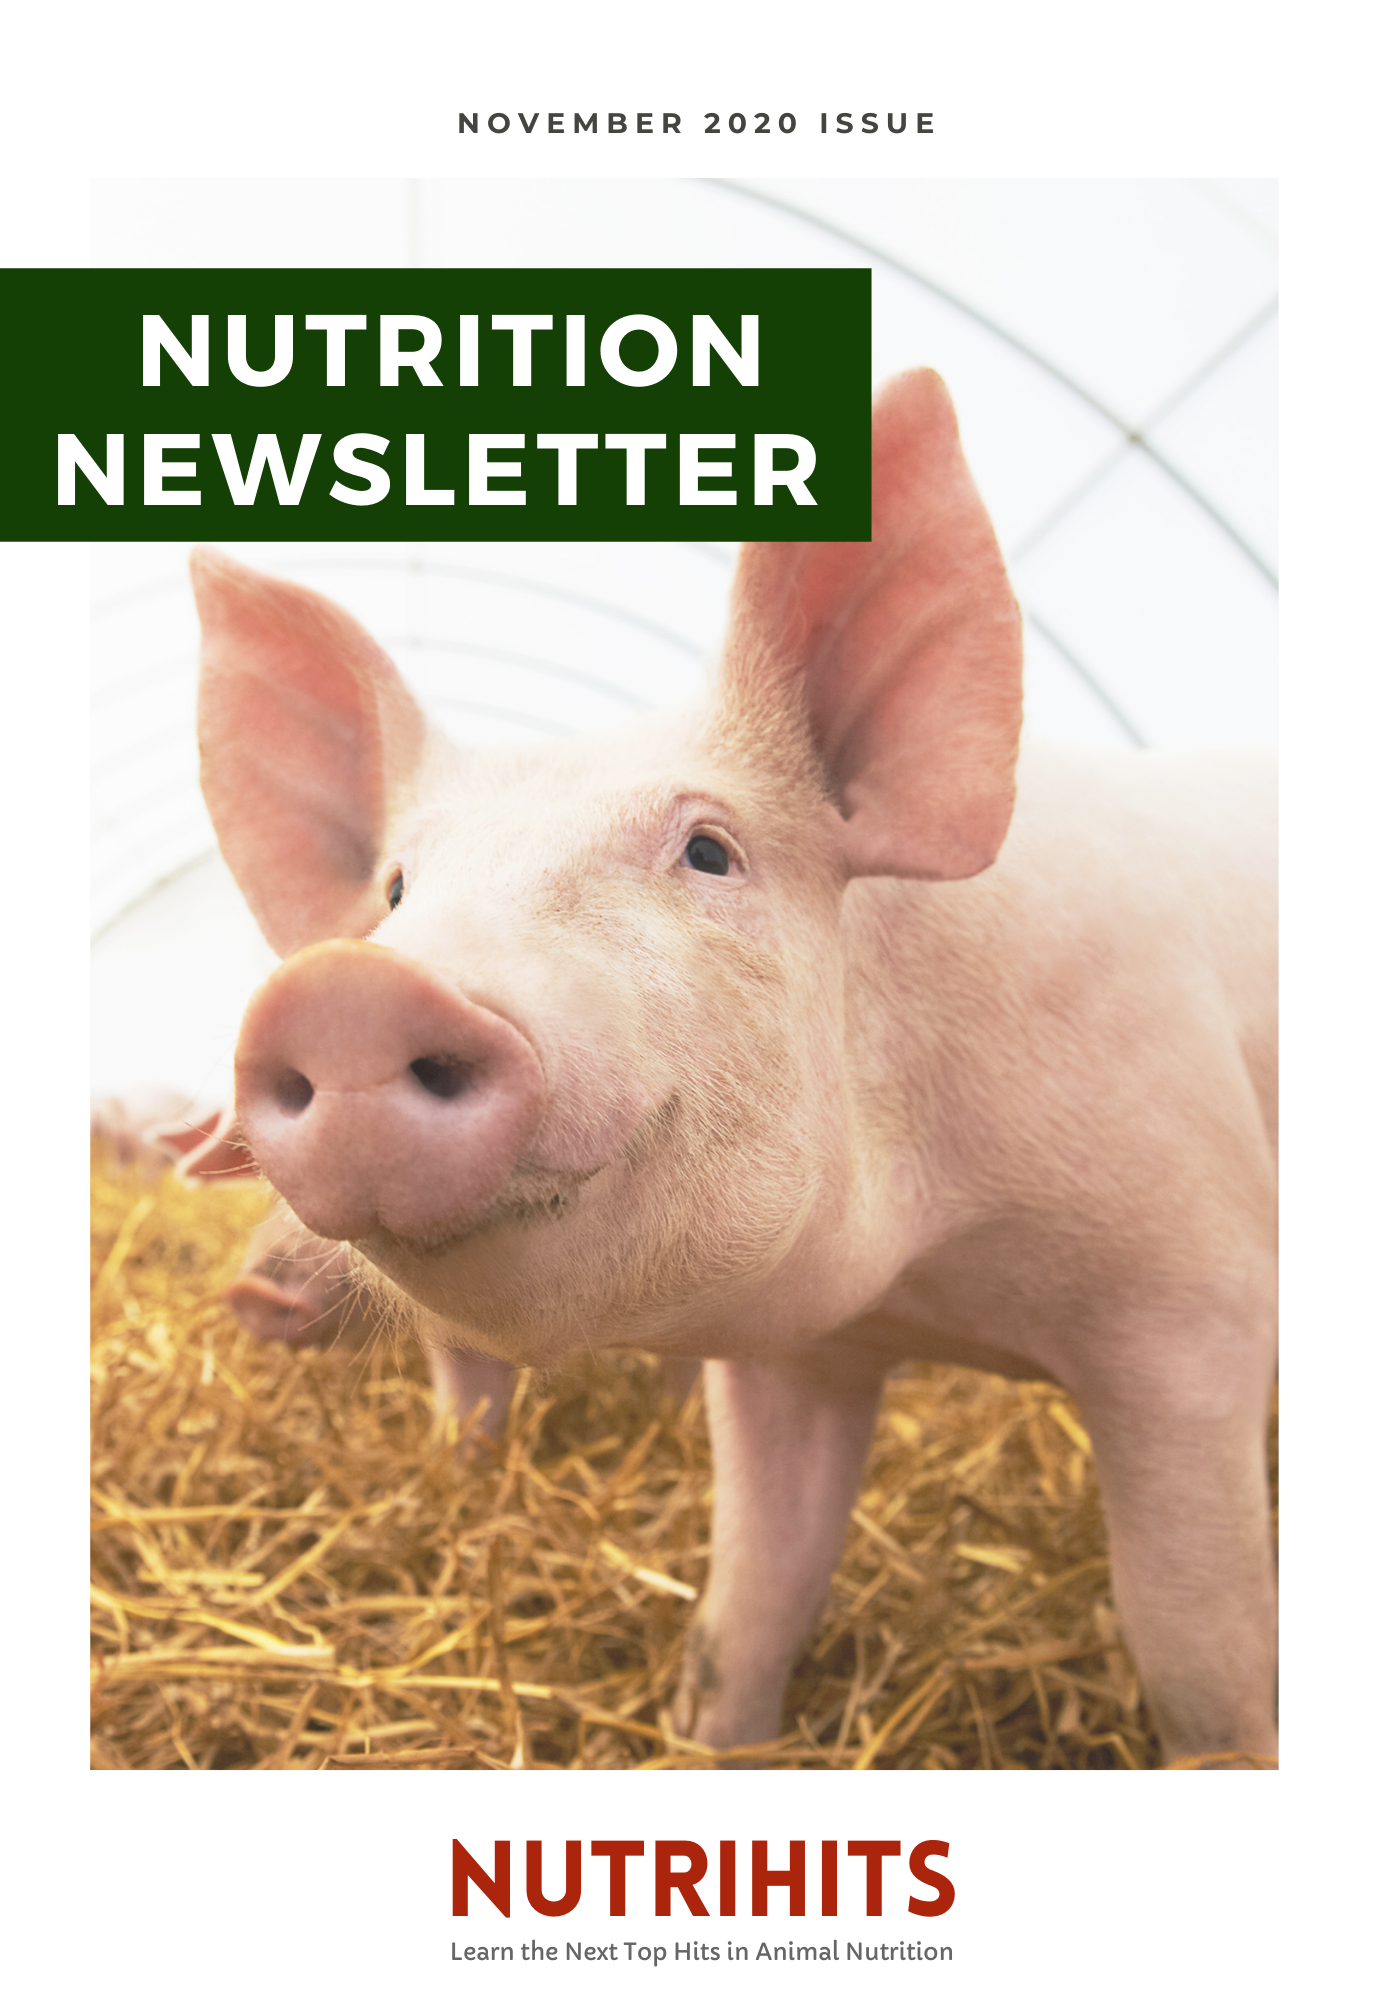 Nutrition Newsletter - November 2020